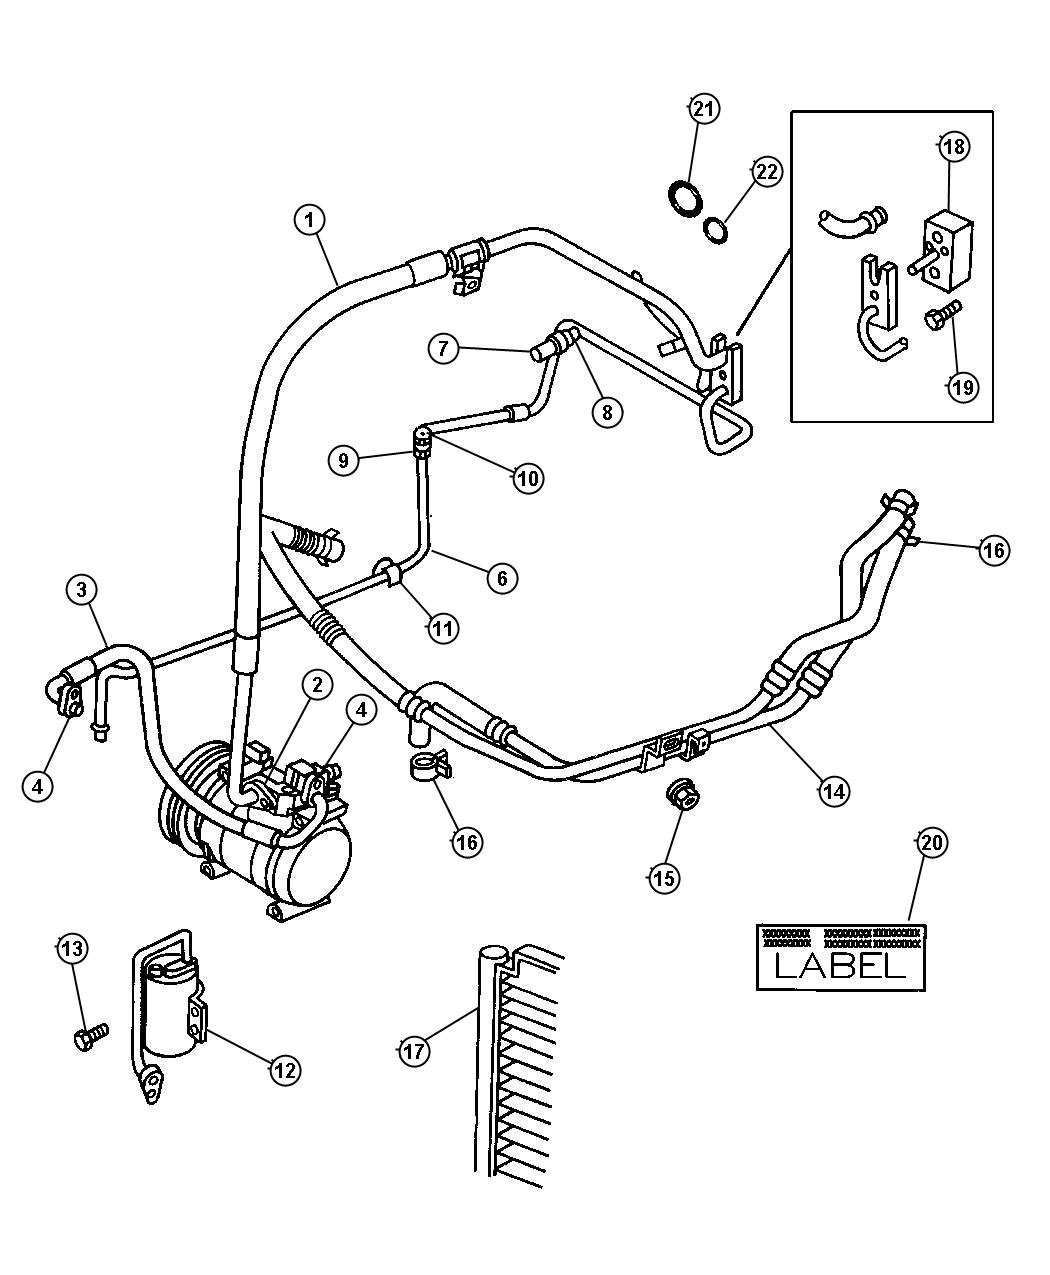 1995 Jeep Yj Wiring Diagram Msd. Jeep. Auto Wiring Diagram